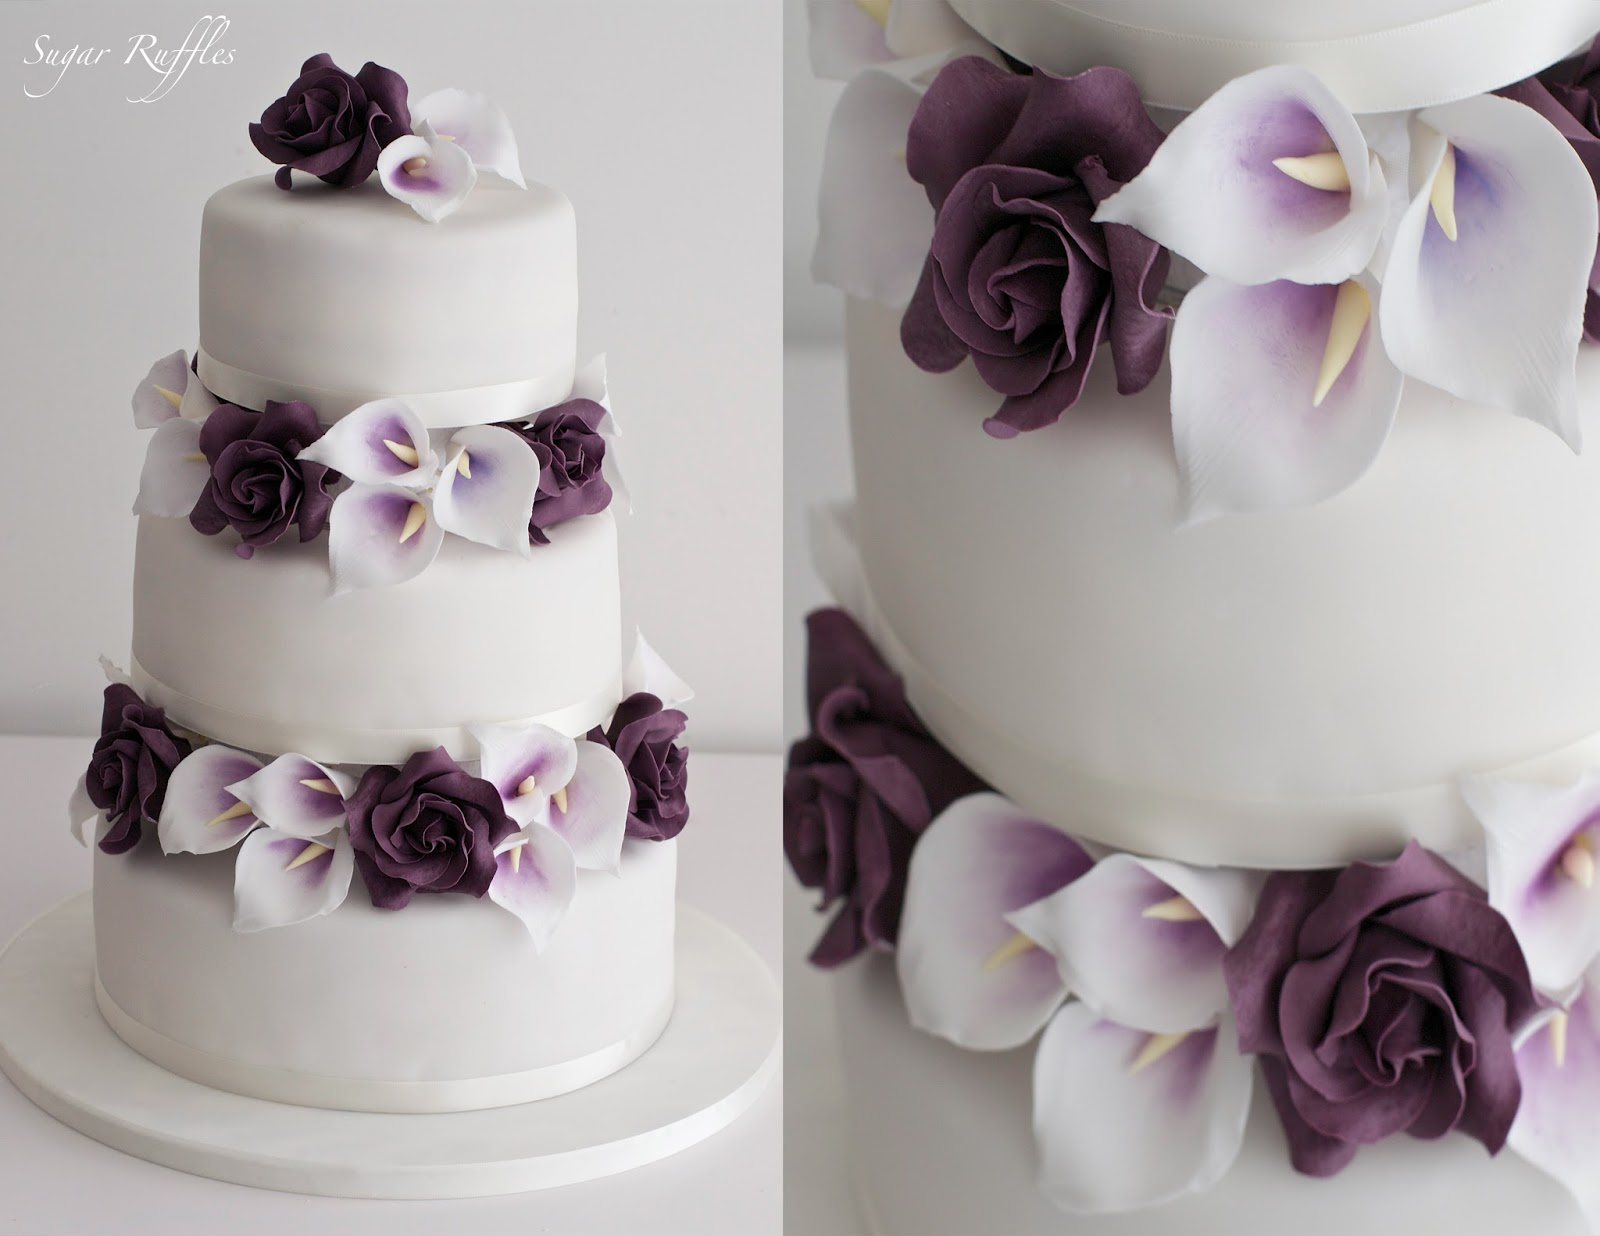 Low Wood Bay Wedding Cakes A 3 tier wedding cake with sugar roses and picasso calla lilies between the  tiers